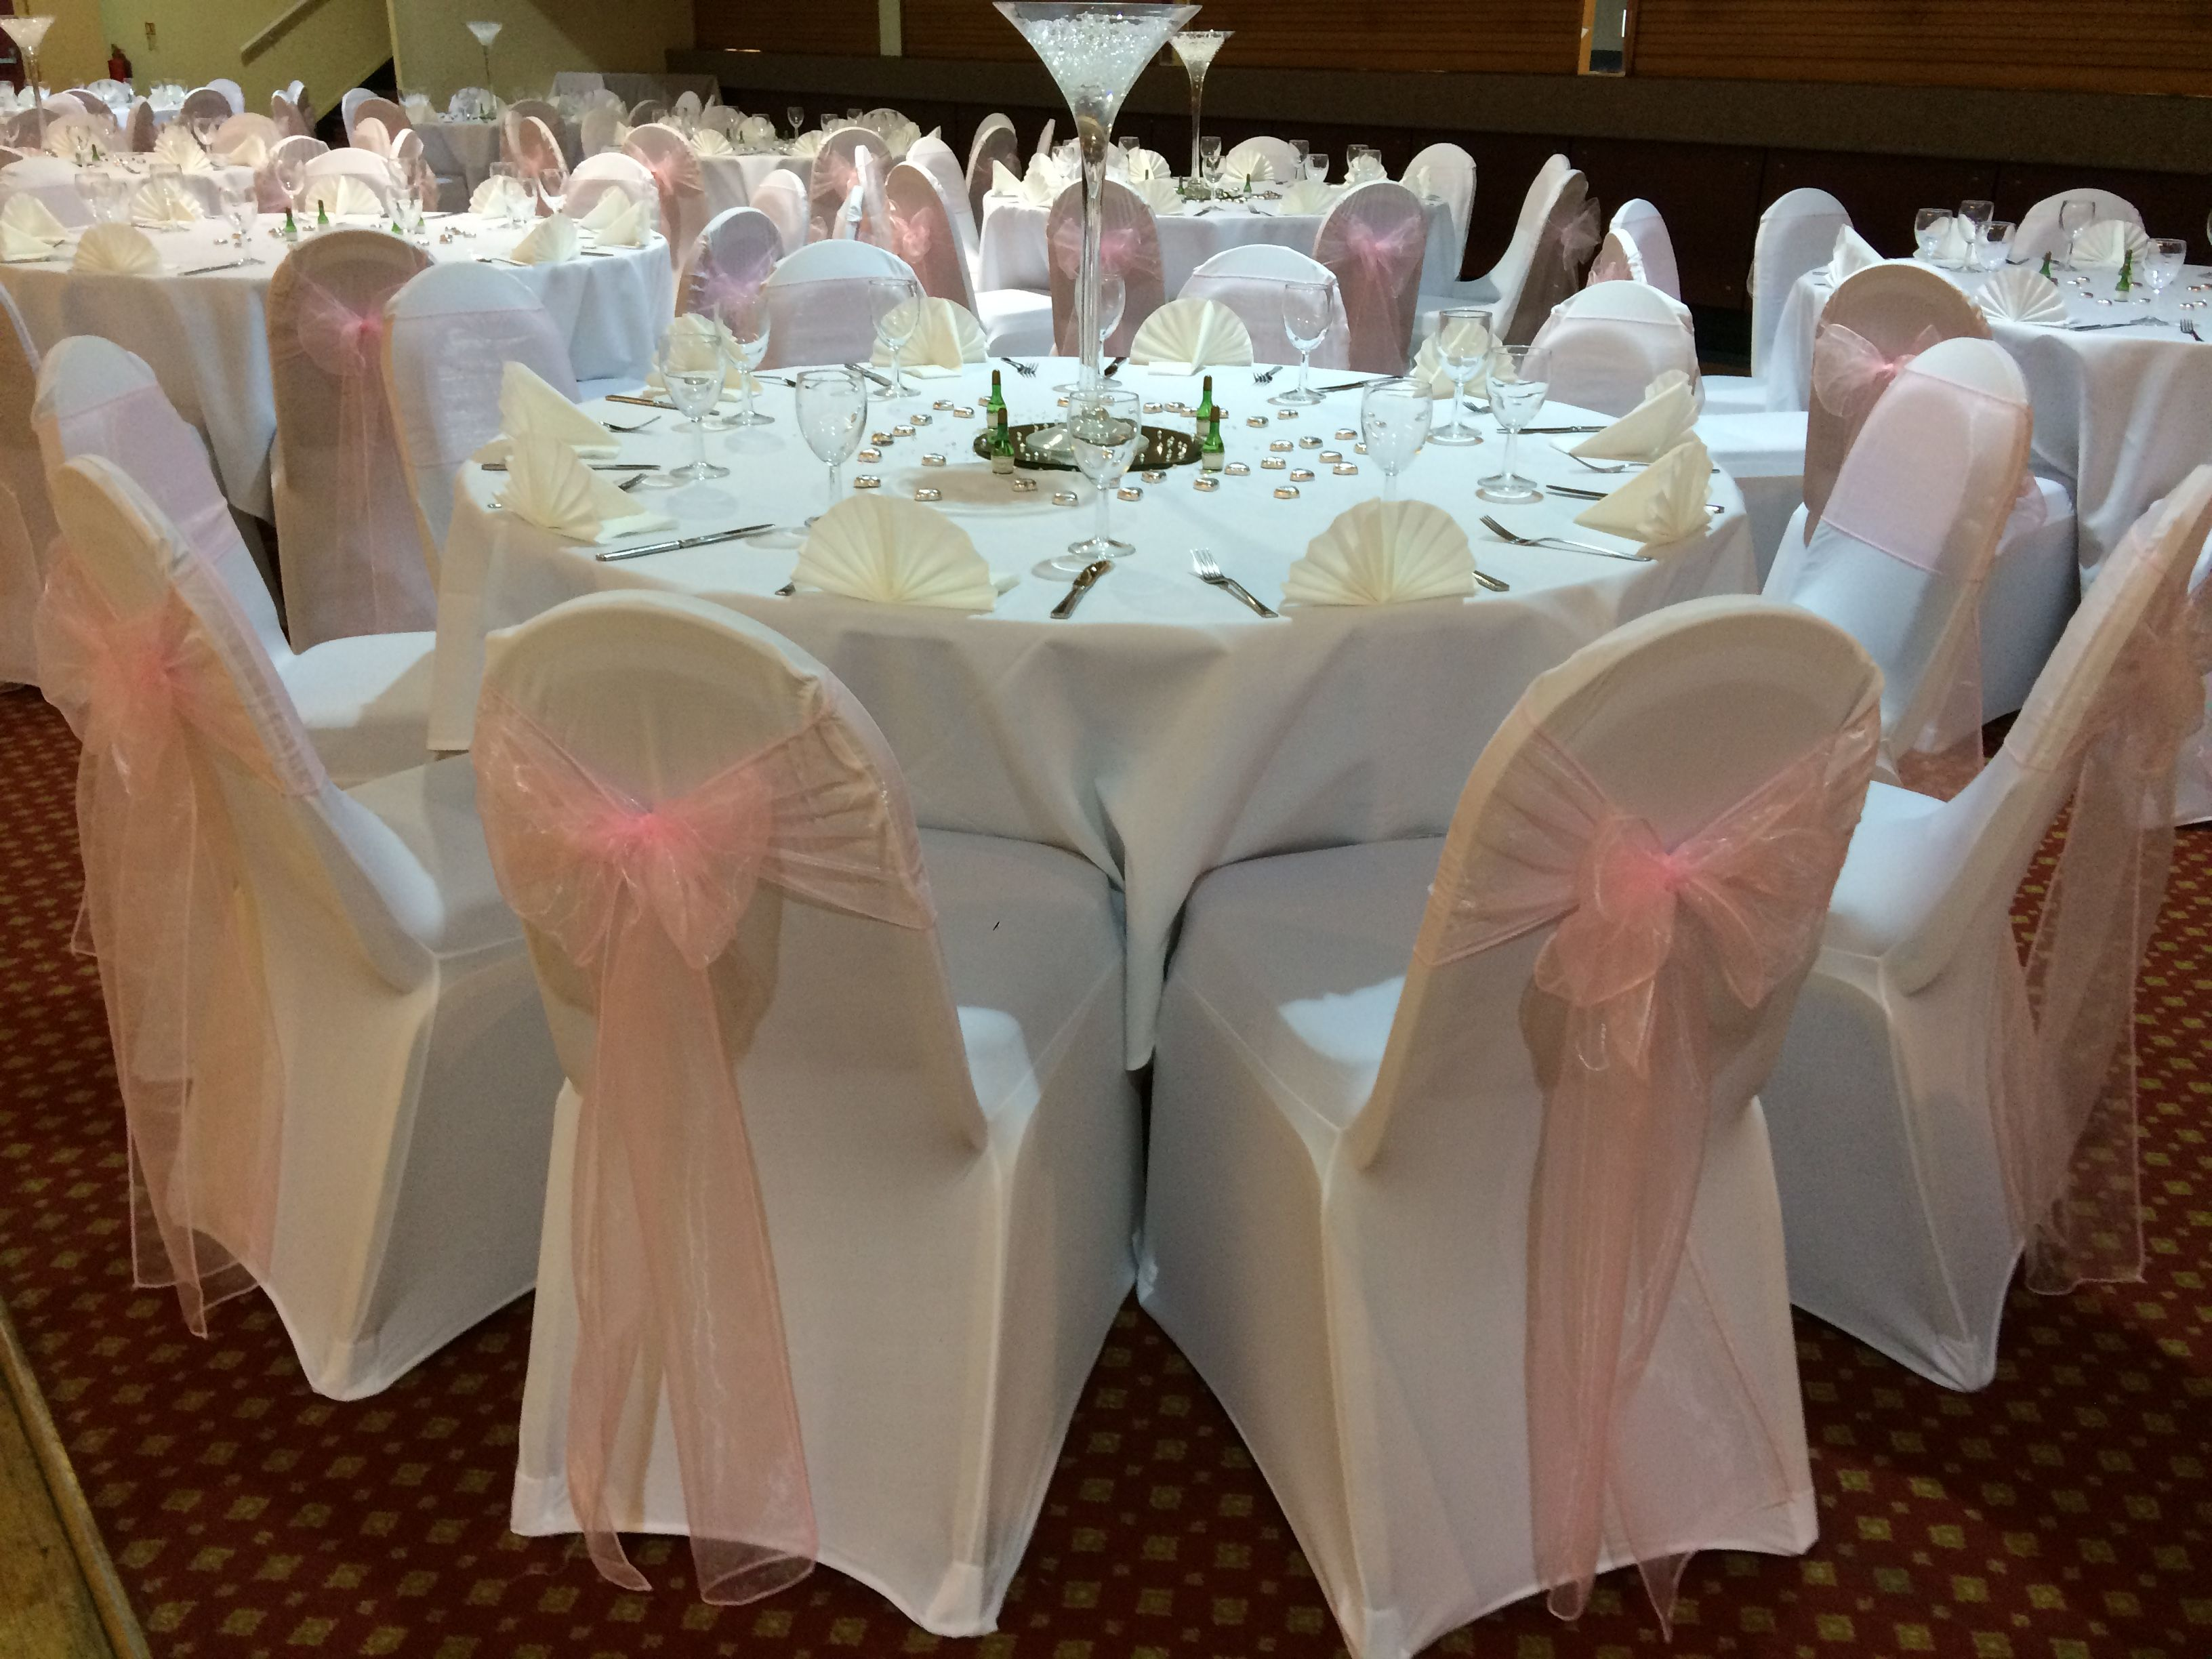 White chair covers with white sash - White Chair Covers With Pale Pink Organza Sashes At A Wedding At The Aberavon Beach Hotel